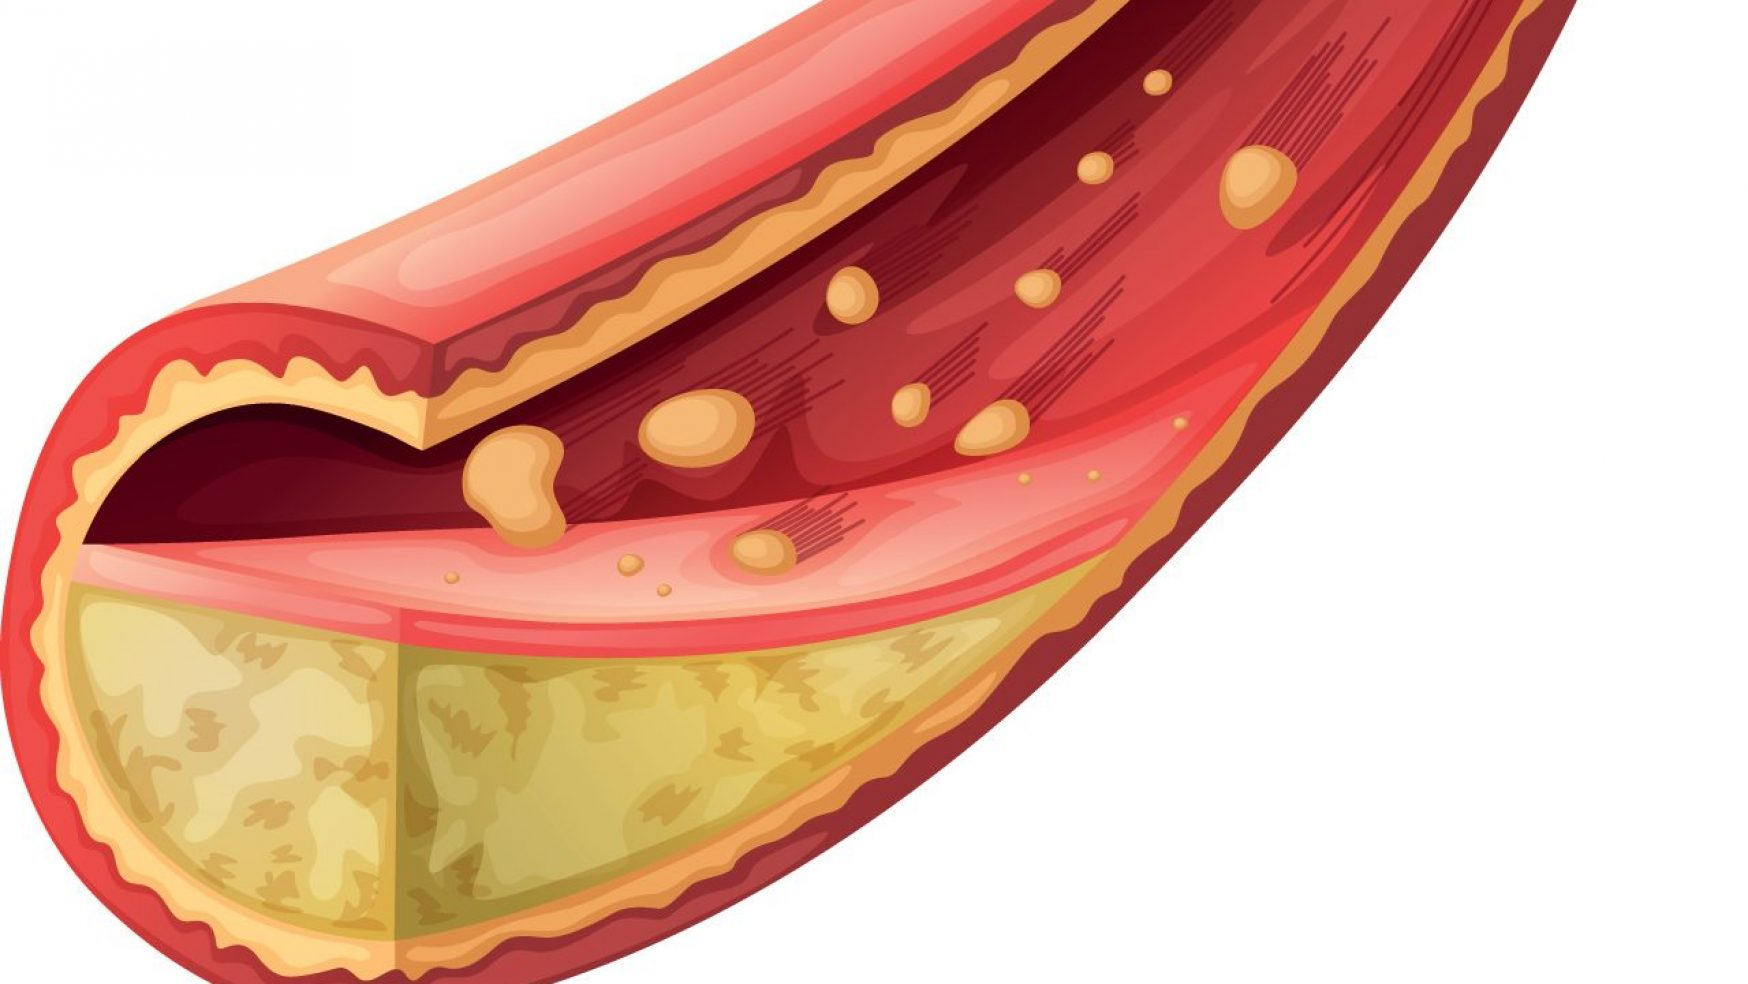 How do atherosclerotic plaques form and what happen if they progress?